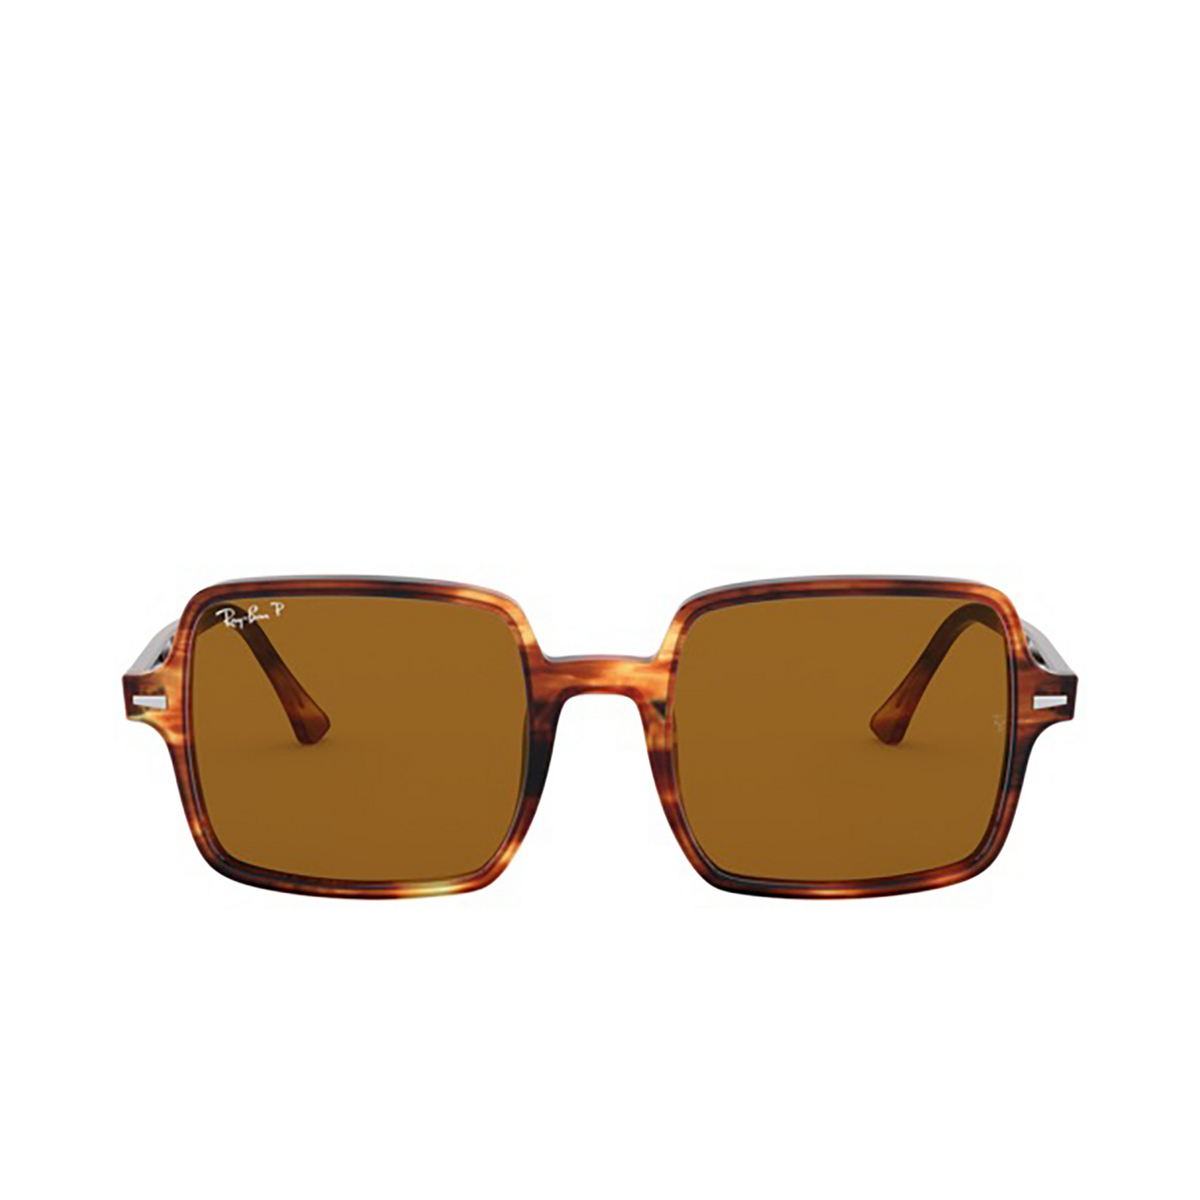 Ray-Ban® Square Sunglasses: Square Ii RB1973 color Striped Havana 954/57 - front view.